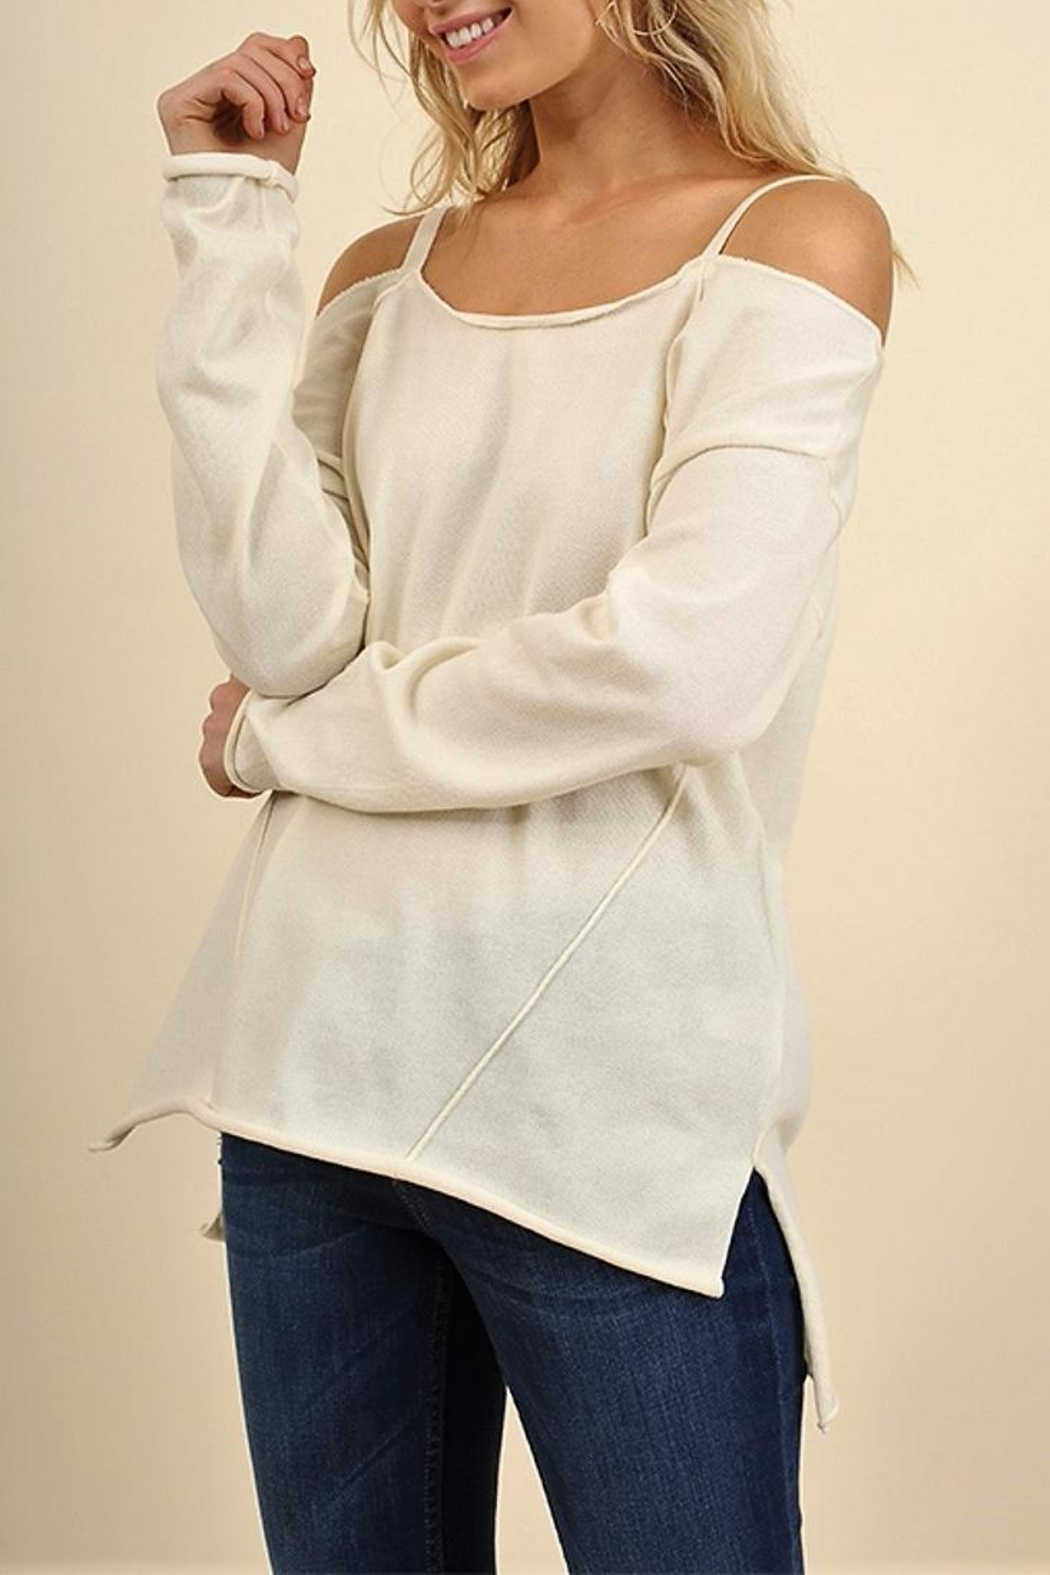 People Outfitter Eternity Cold Shoulder Top - Main Image